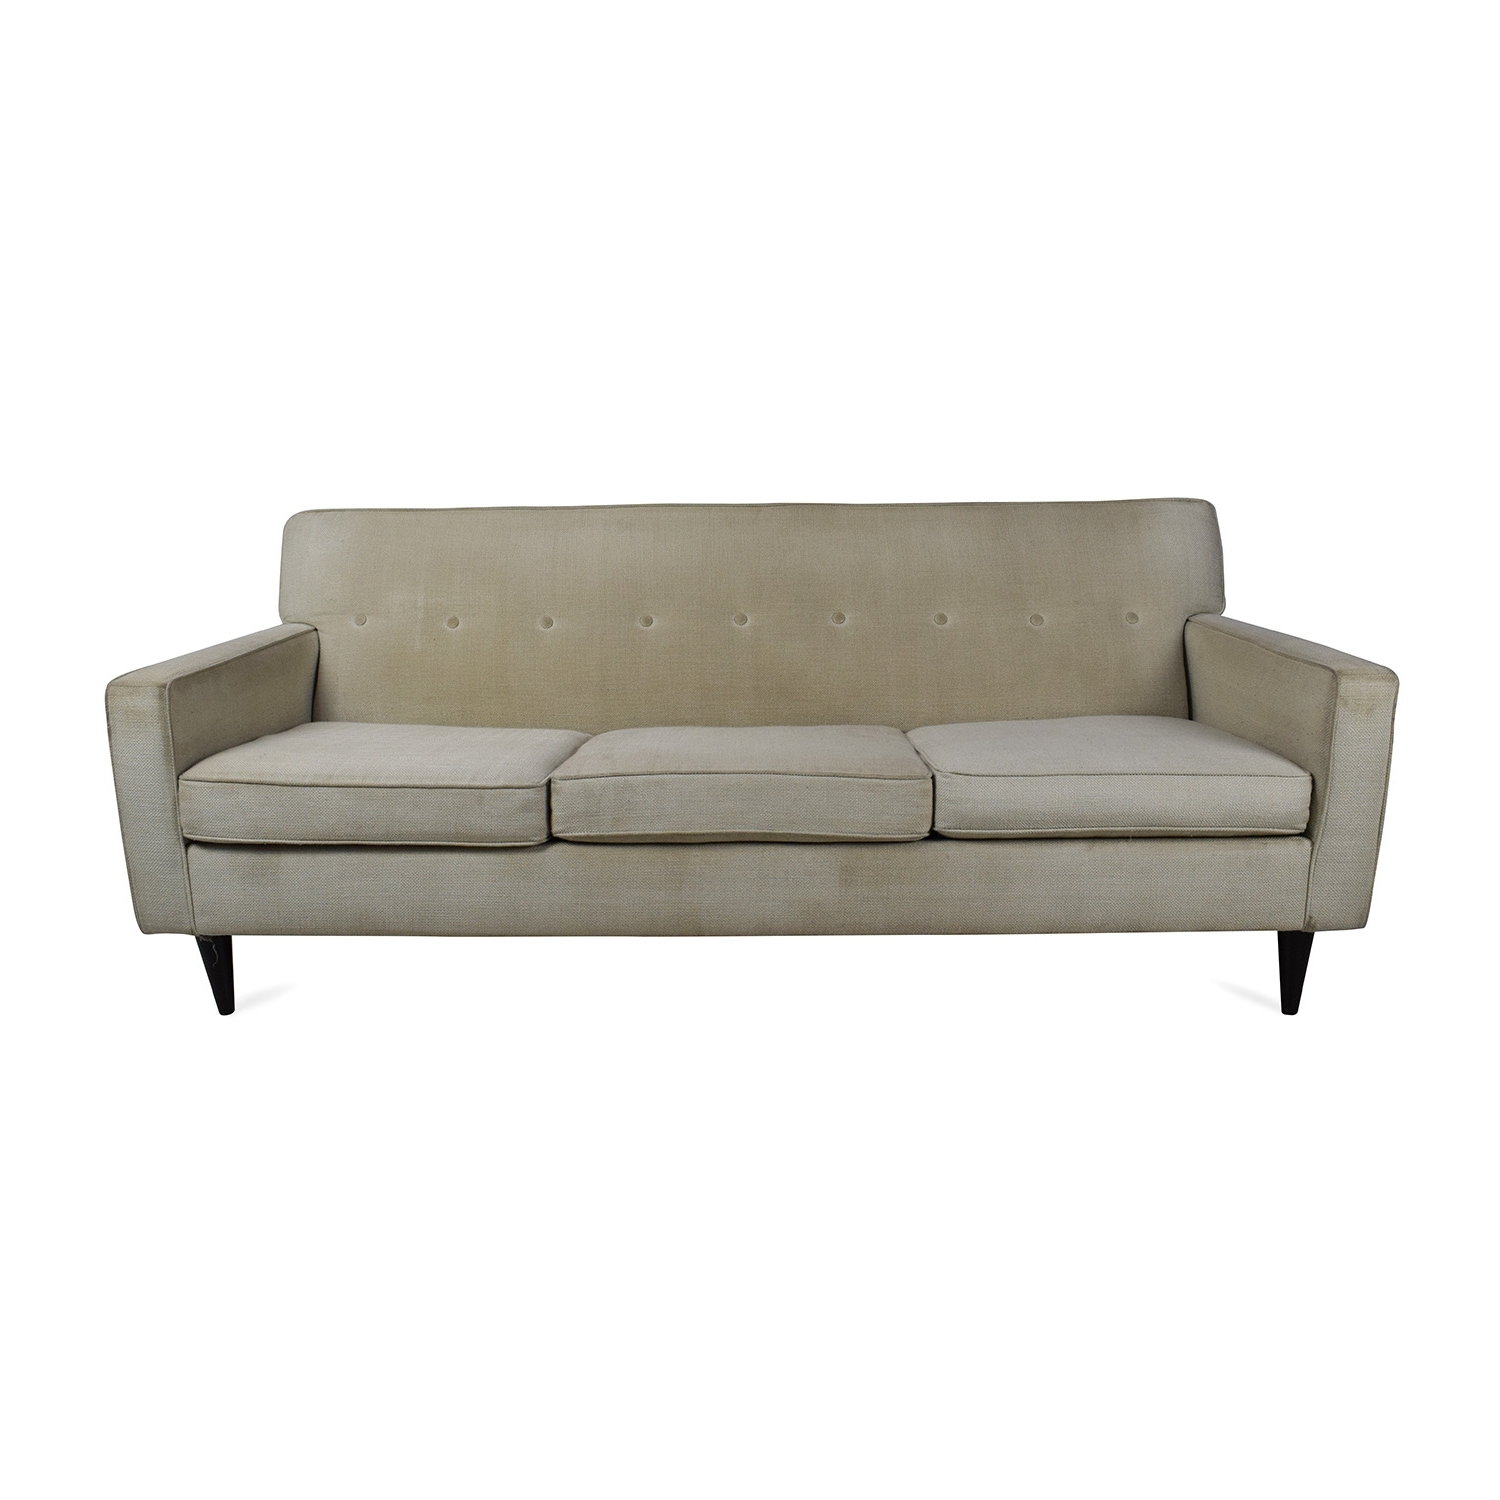 The Best Macys Sofas   83  Off     Macy s Macy s Clare Fabric Sofa   Sofas Pertaining To Newest